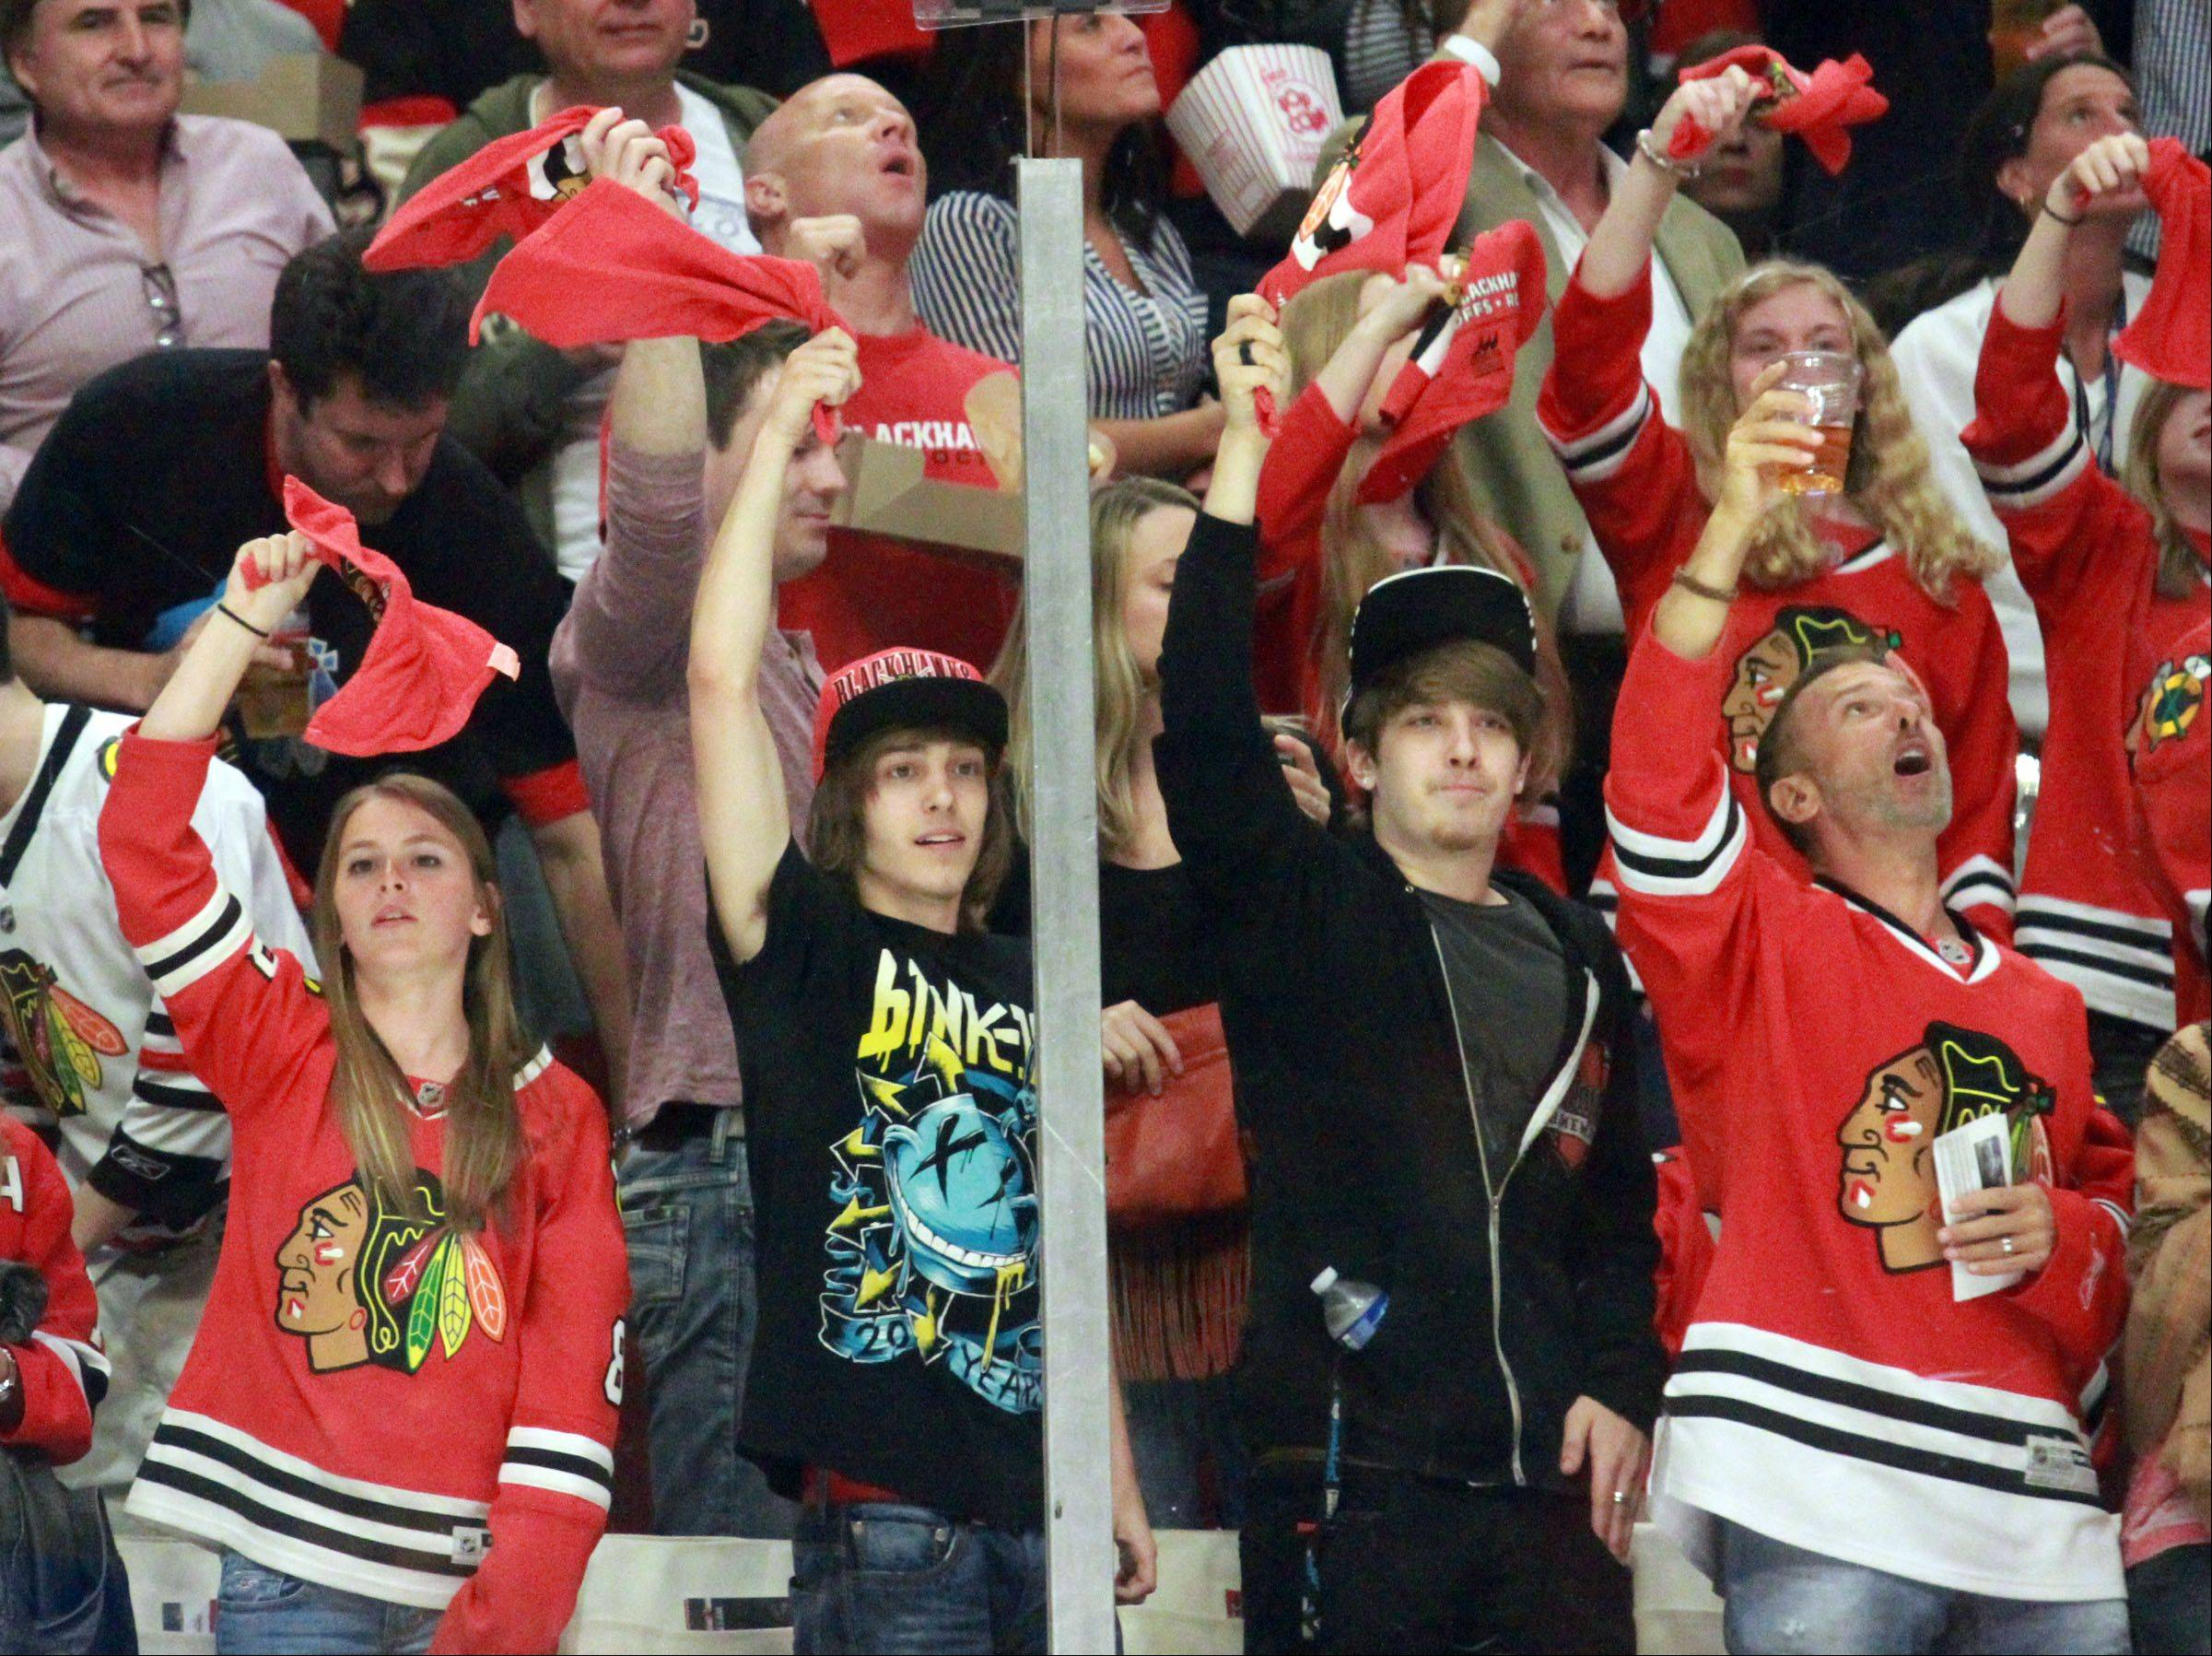 Blackhawks fans have accounted for 214 consecutive sellouts in the regular season, and playoff games at the hottest ticket in Chicago.